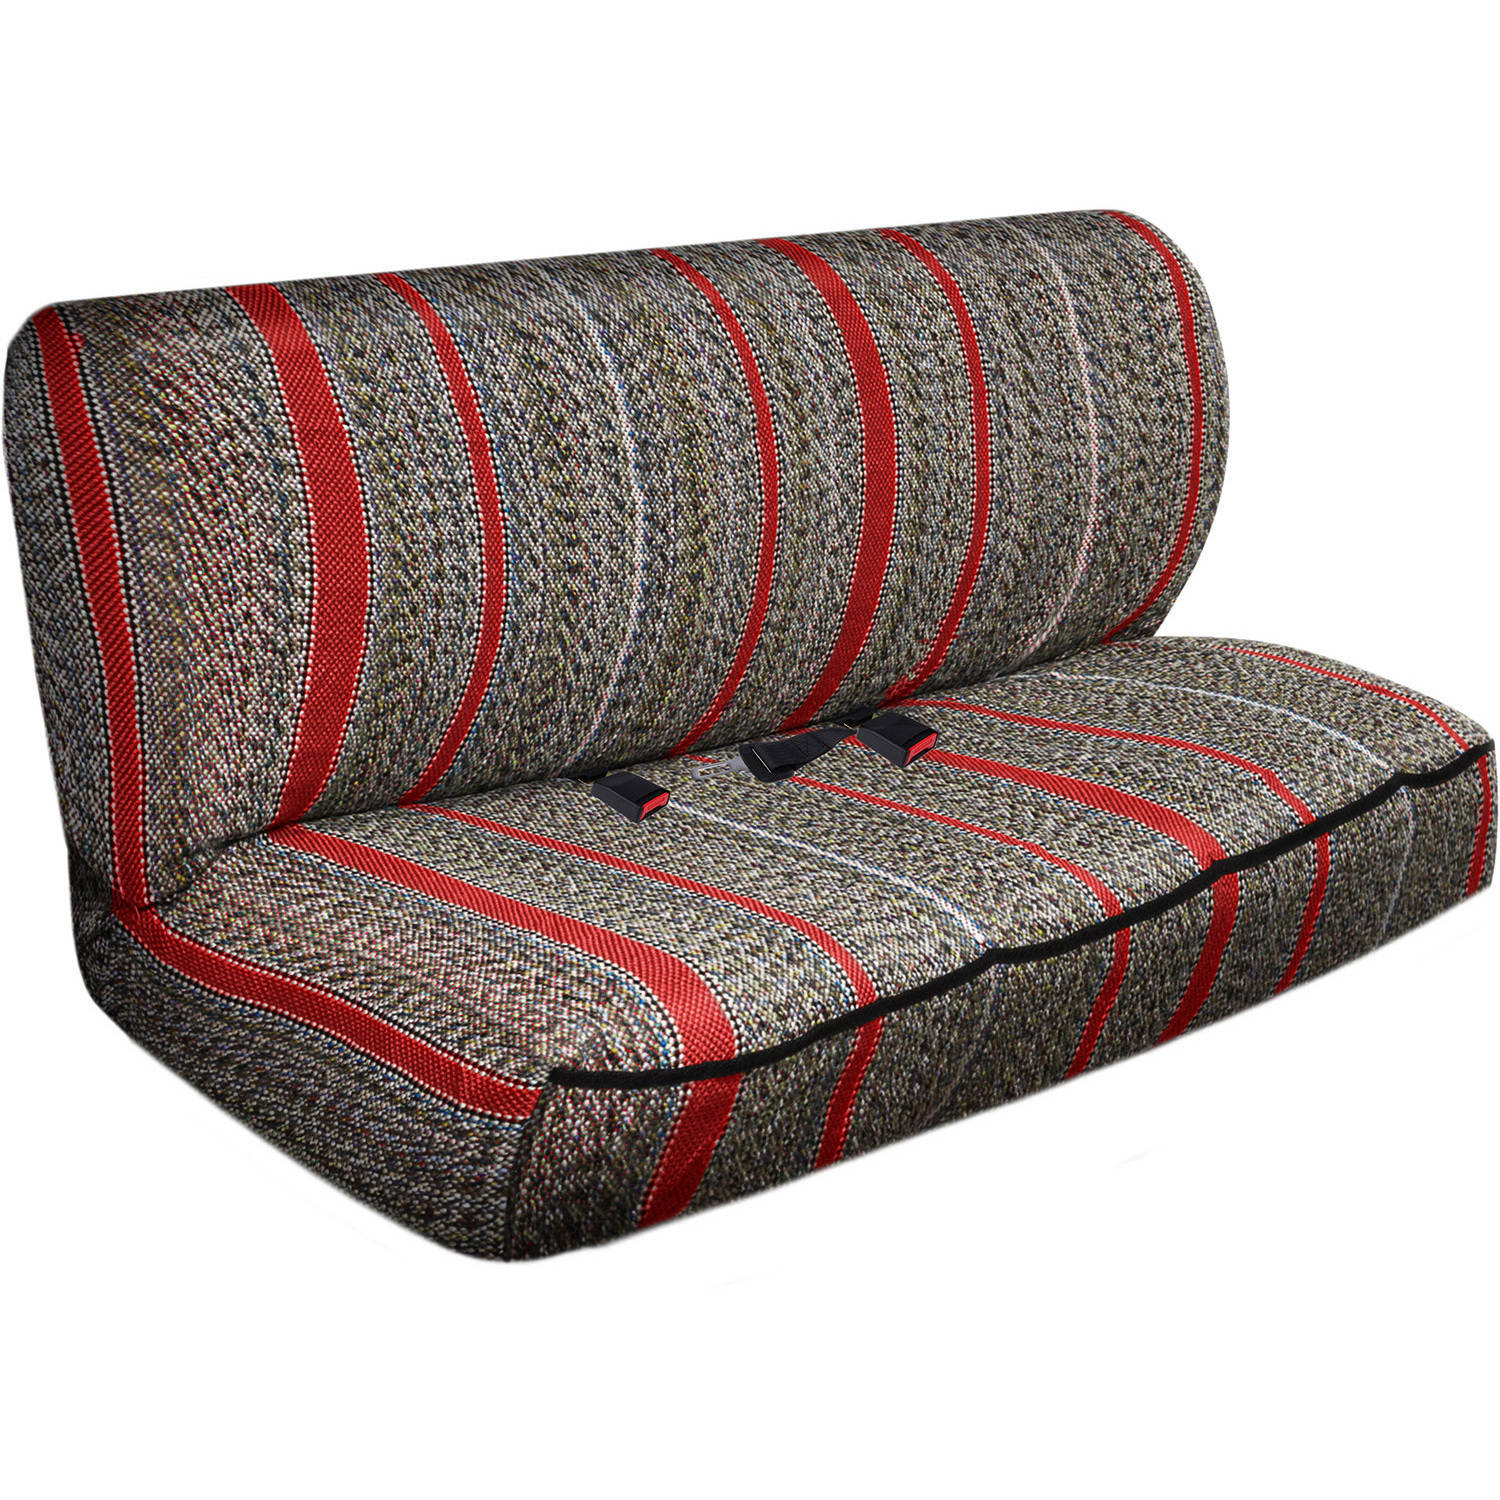 OxGord 2-Piece Full Size Heavy Duty Saddle Blanket Bench Seat Covers, Red